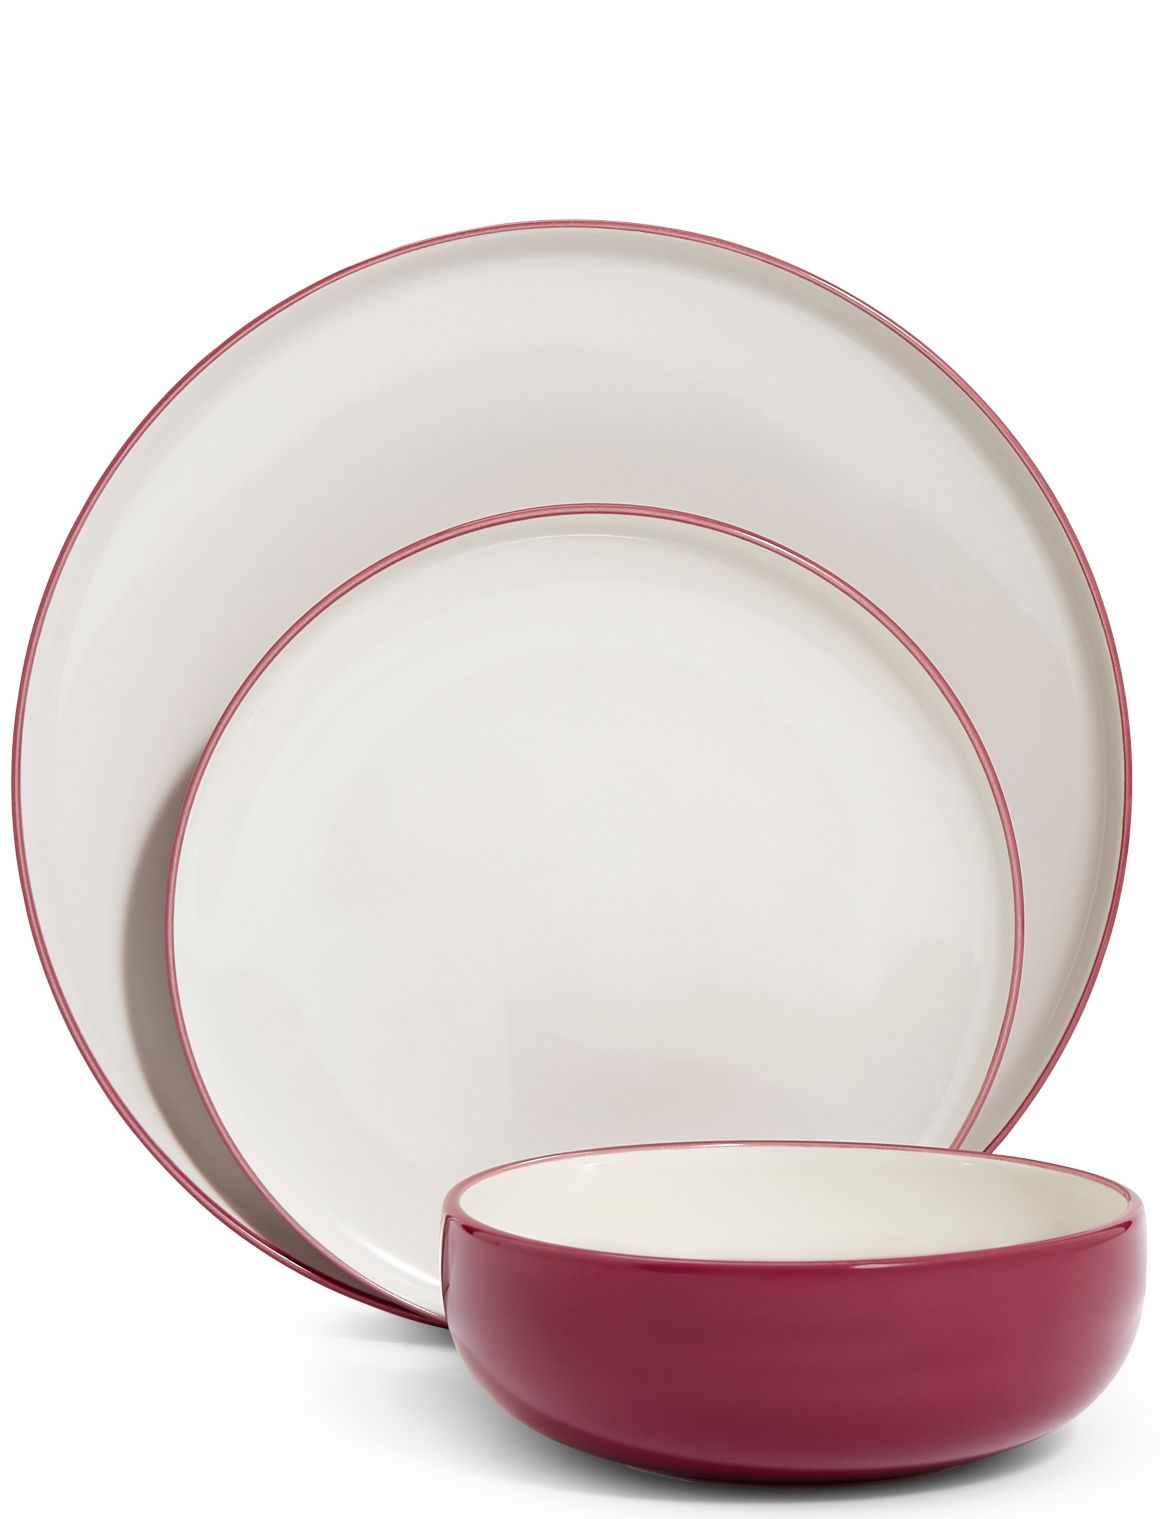 12 Piece Tribeca Dinner Set rose